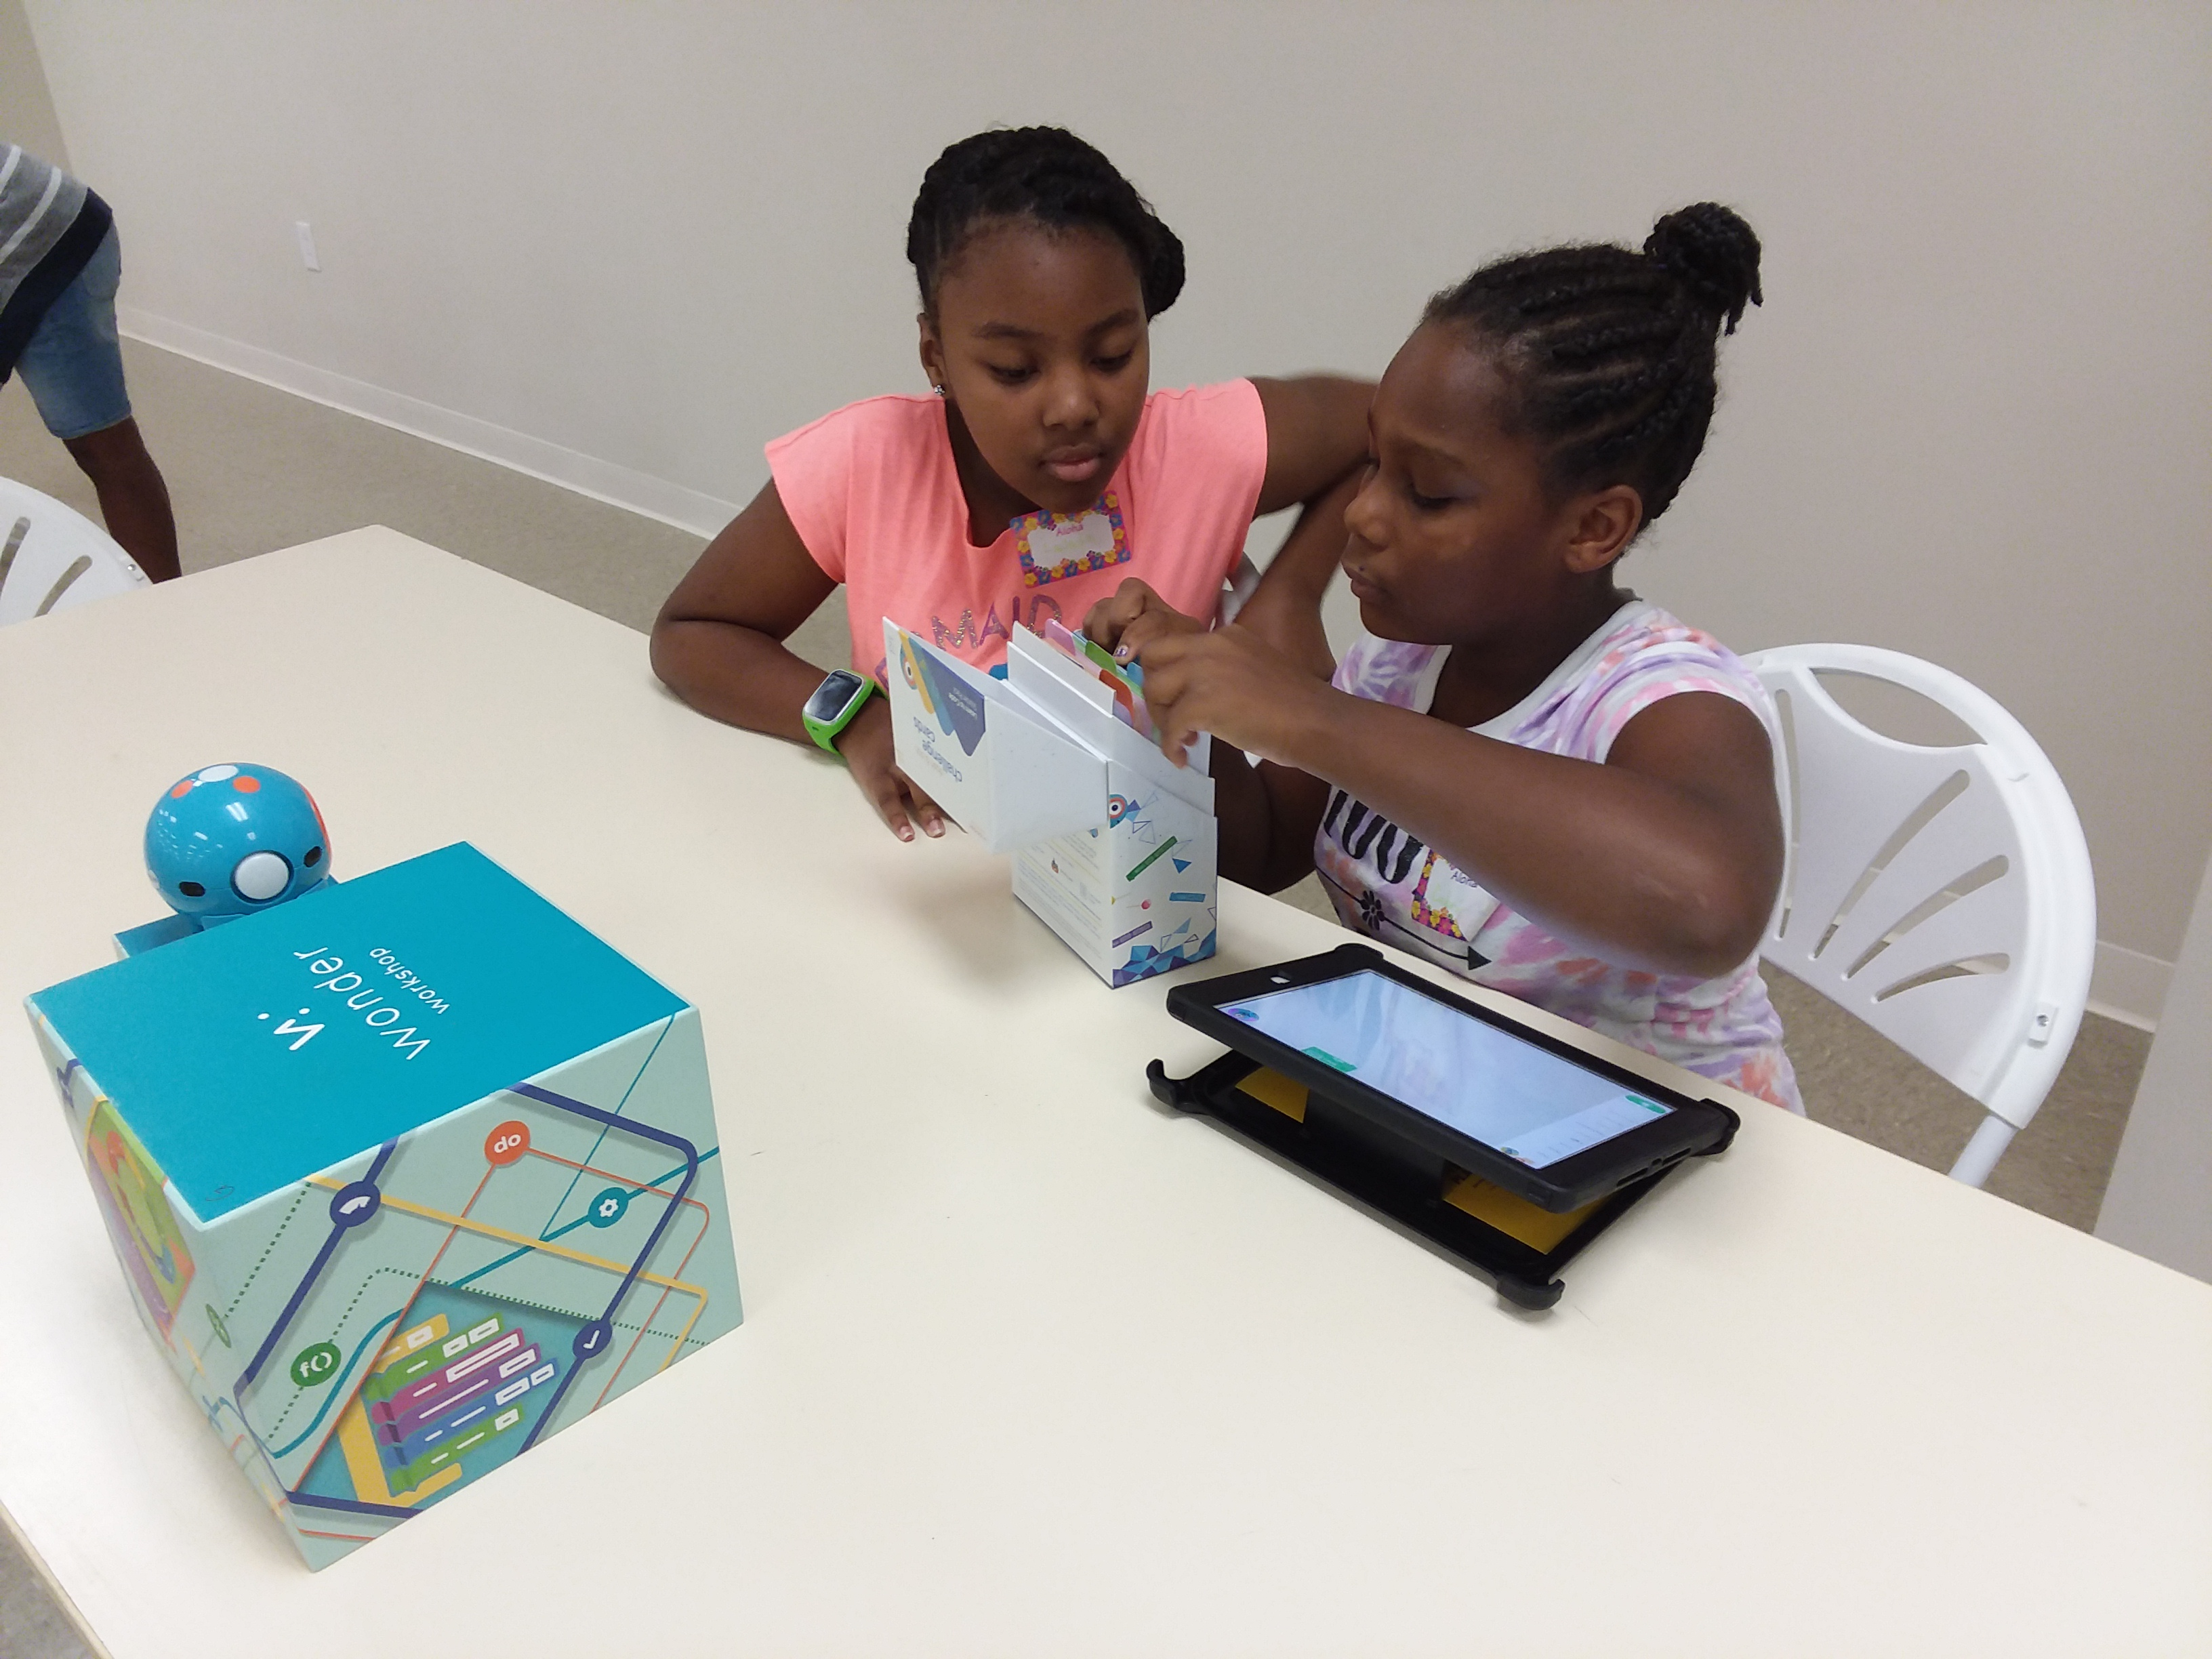 Cabria Baldwin and LaJada James program Dash and Dot using challenge cards